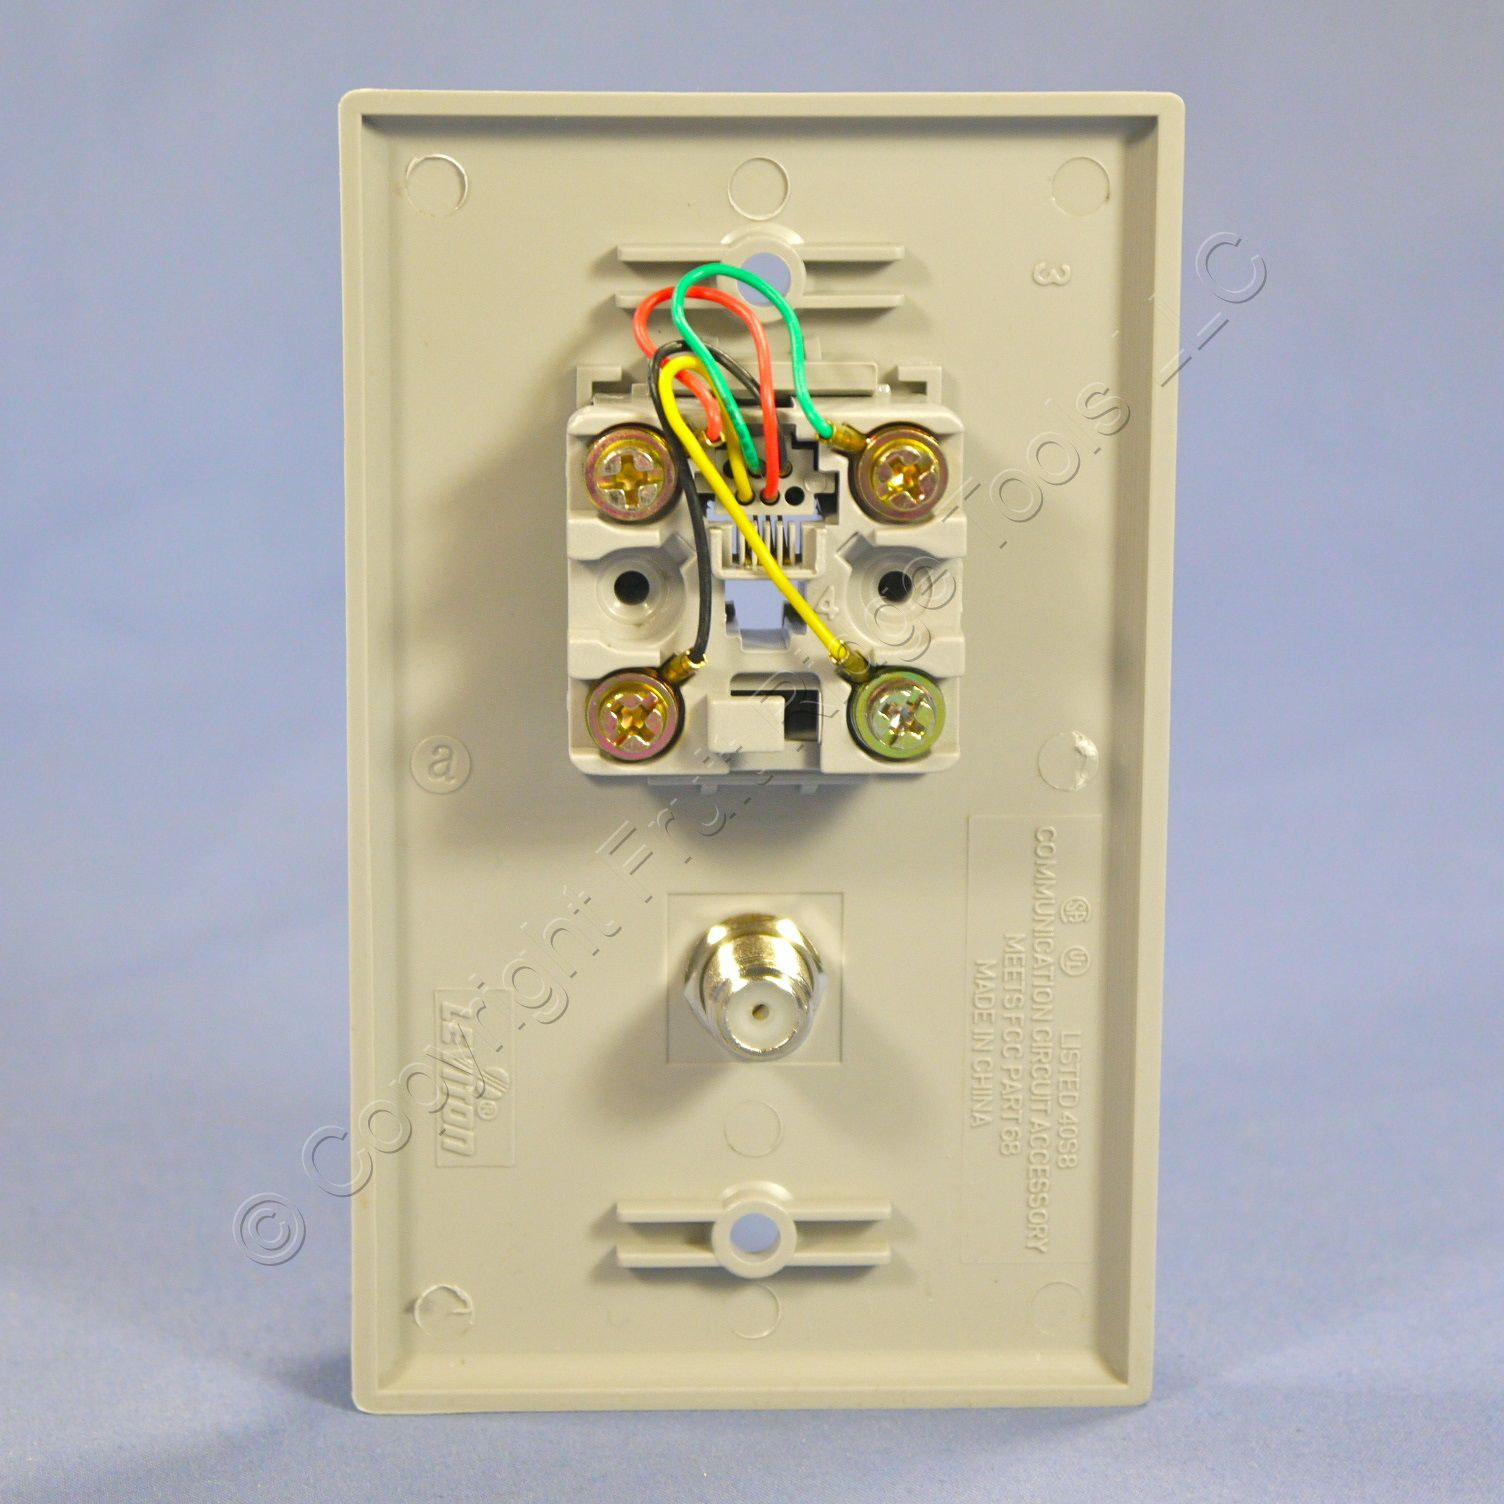 Phone Jack Wiring Grey Wires Diagrams Leviton Cat5 Diagram Gray Cable Catv Video Wall Plate Telephone Cat 5